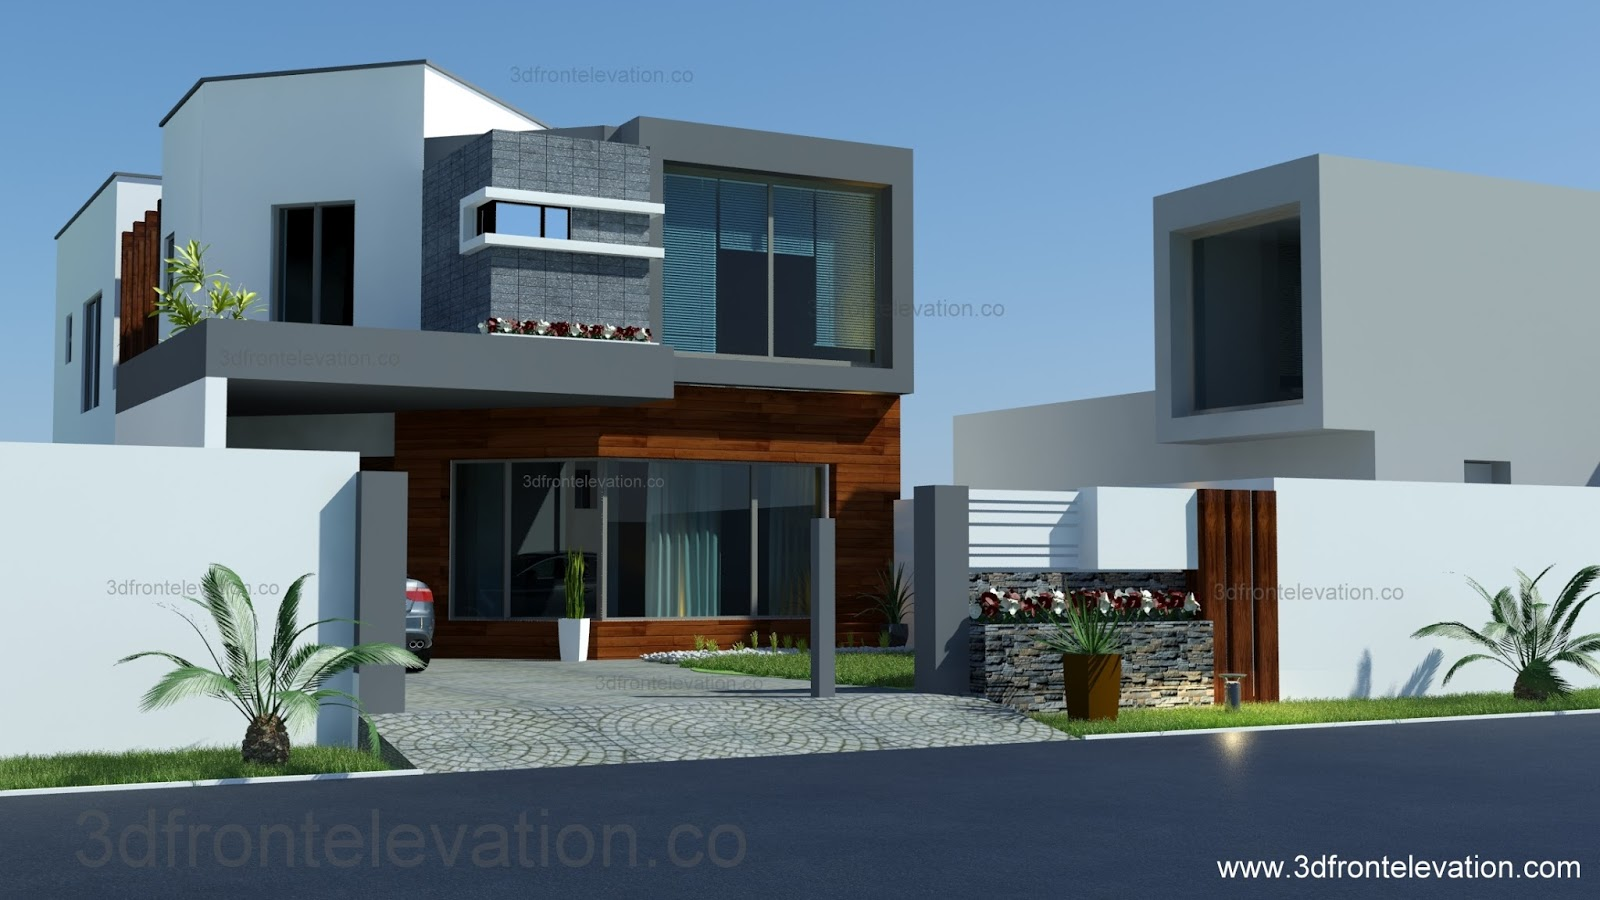 D home design front elevation home furniture design for Home design 3d 5 0 crack